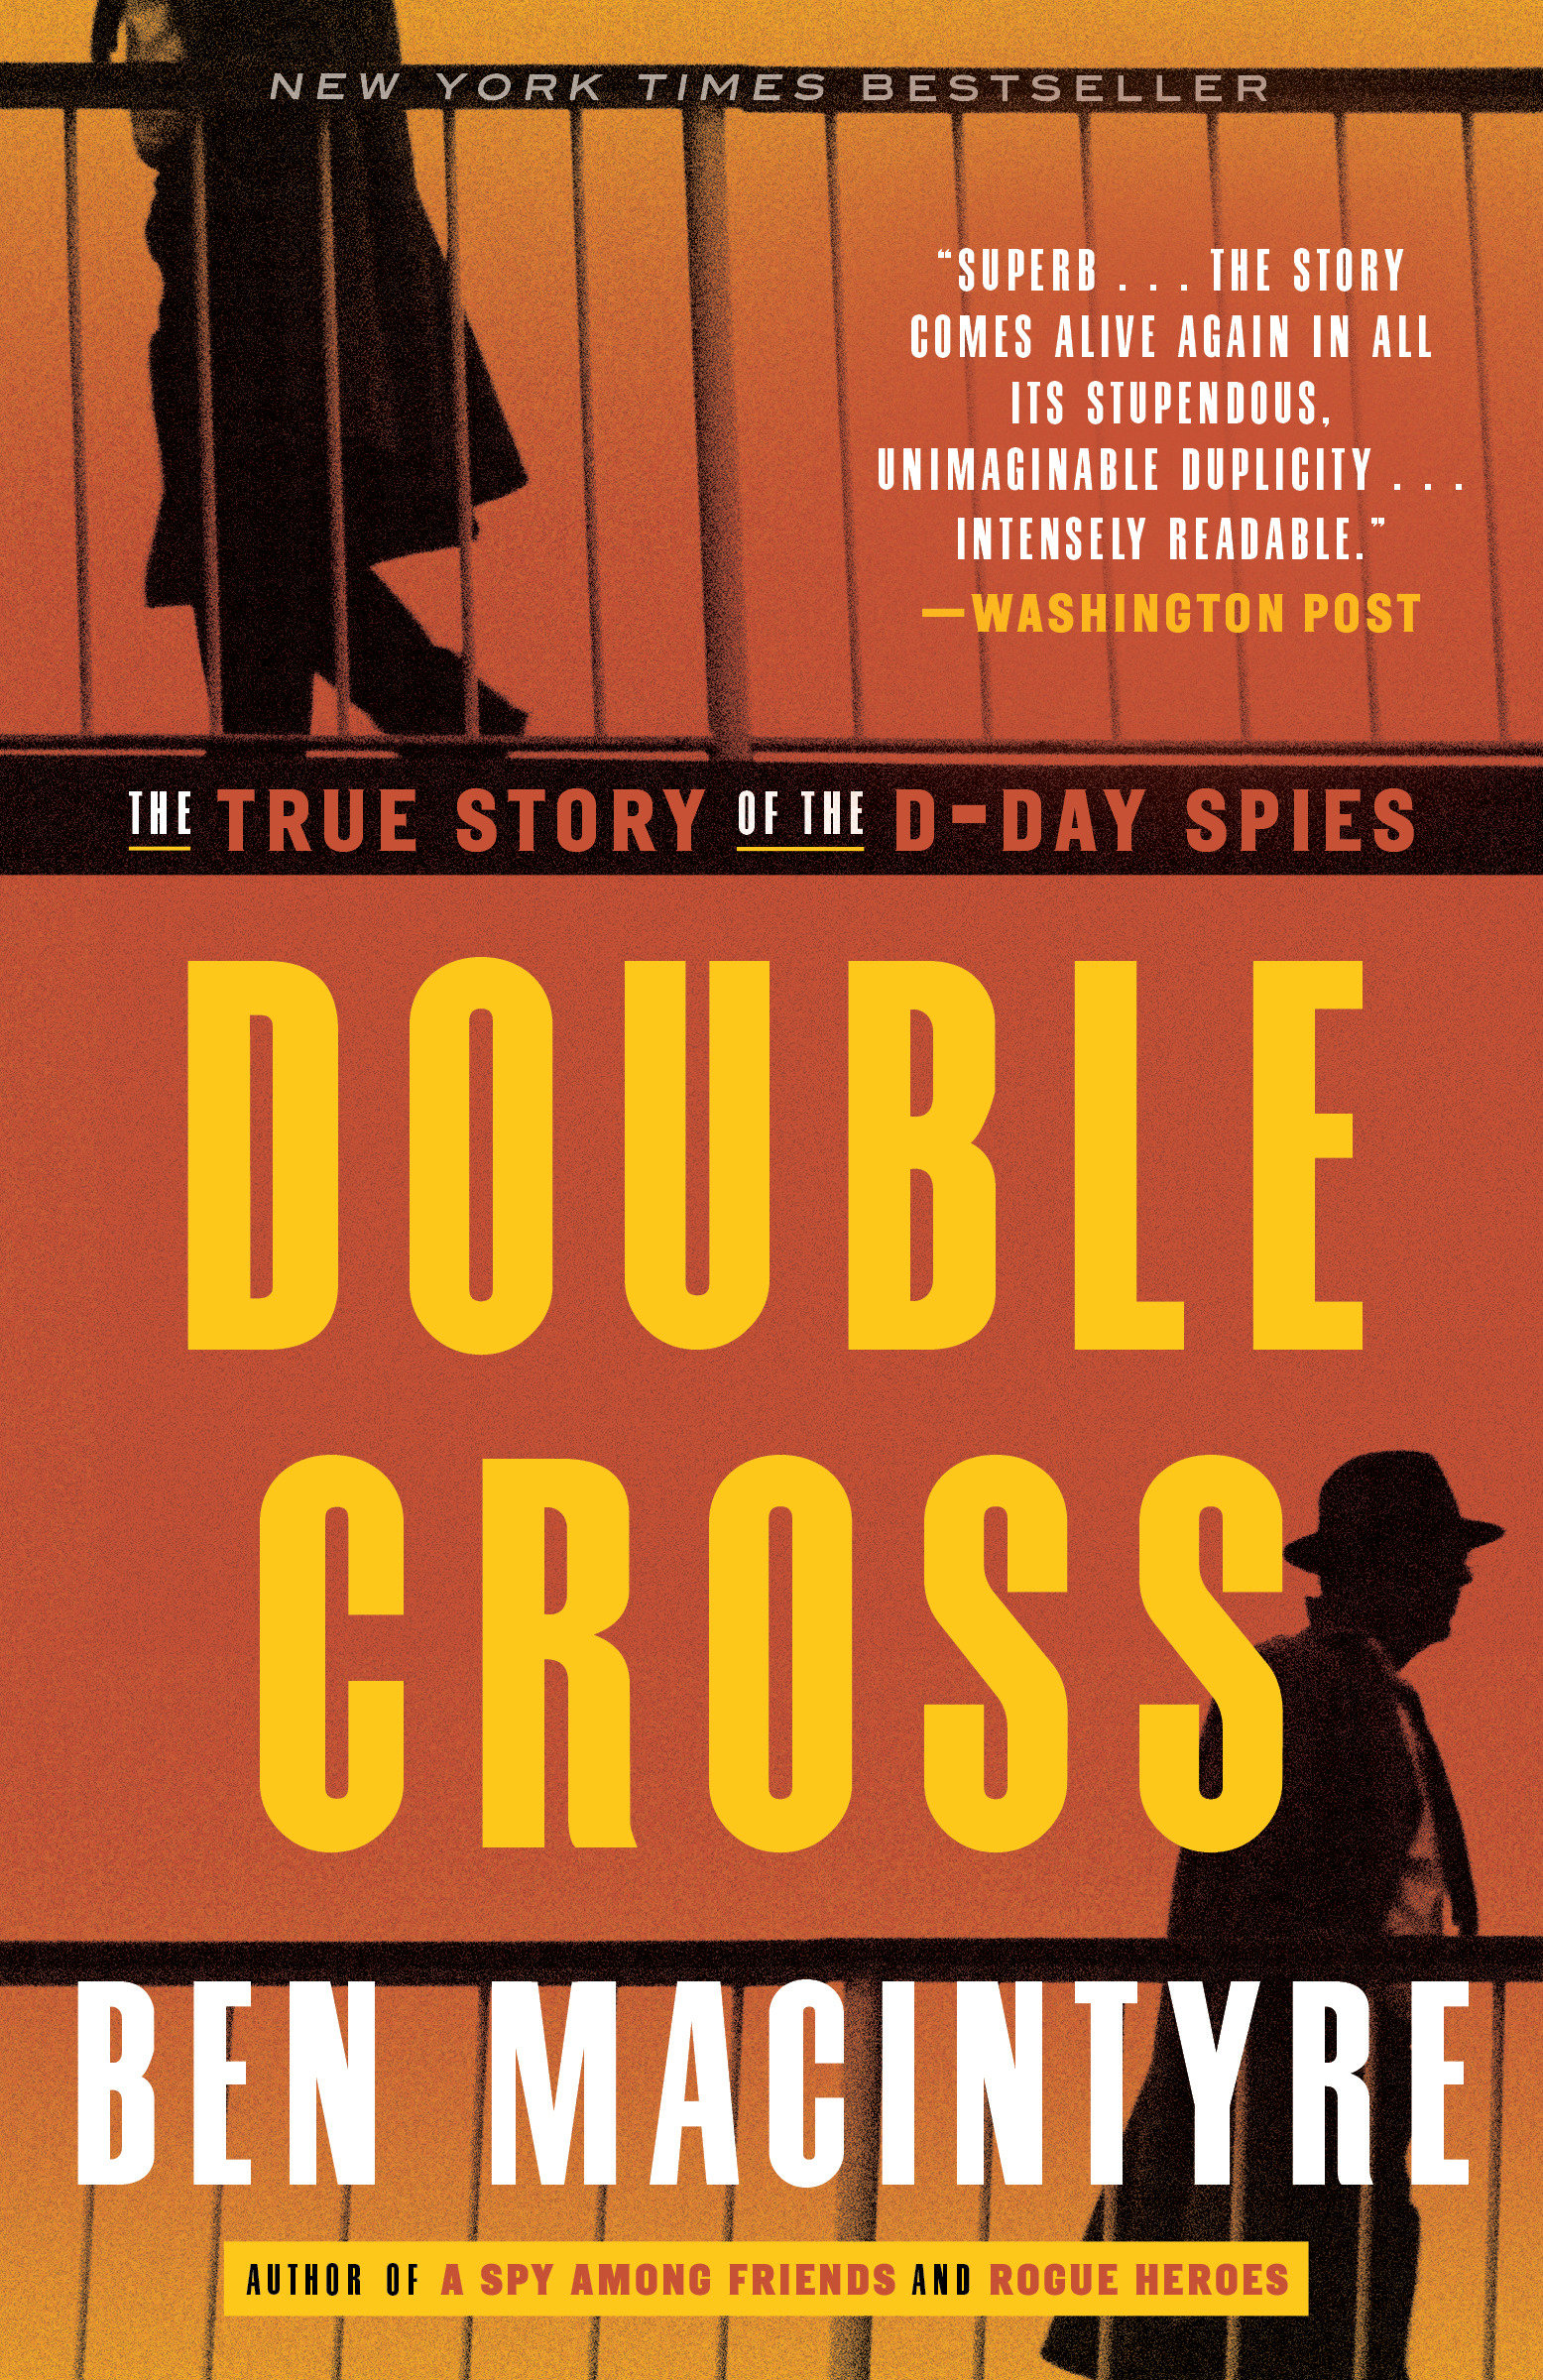 Double cross the true story of the D-day spies cover image